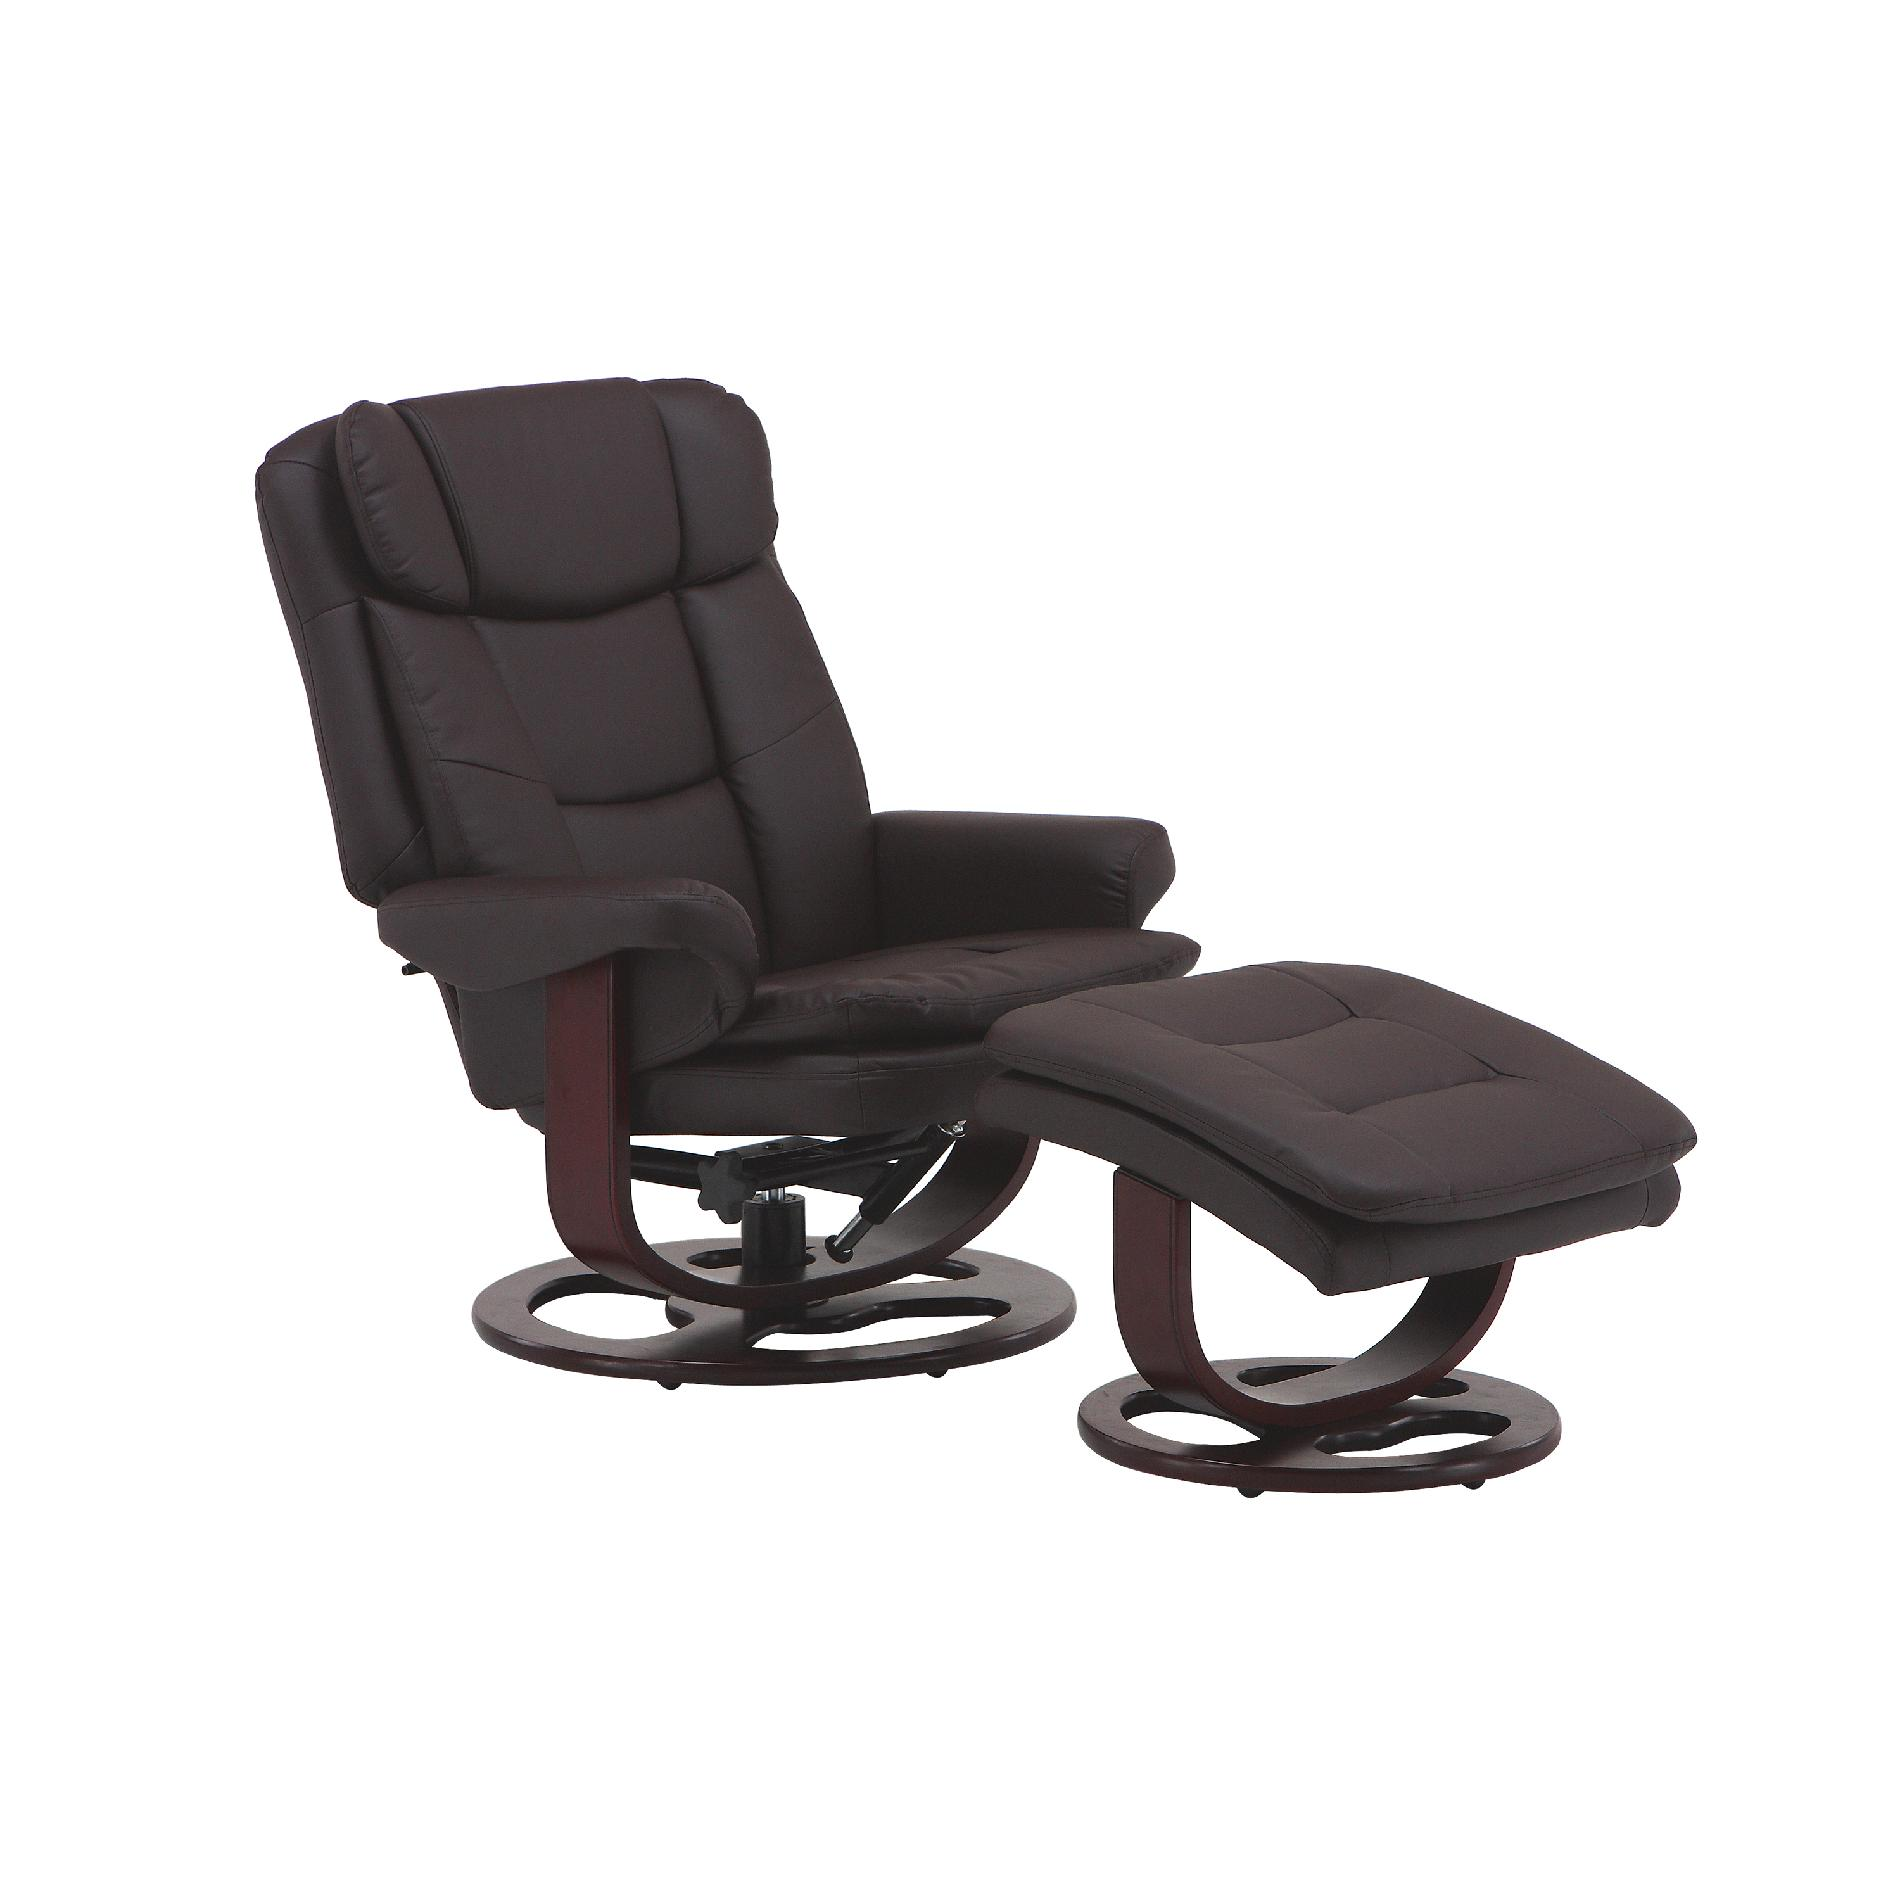 spinning top chair south africa cover rentals westchester ny venetian worldwide vw ch125620 the reclining